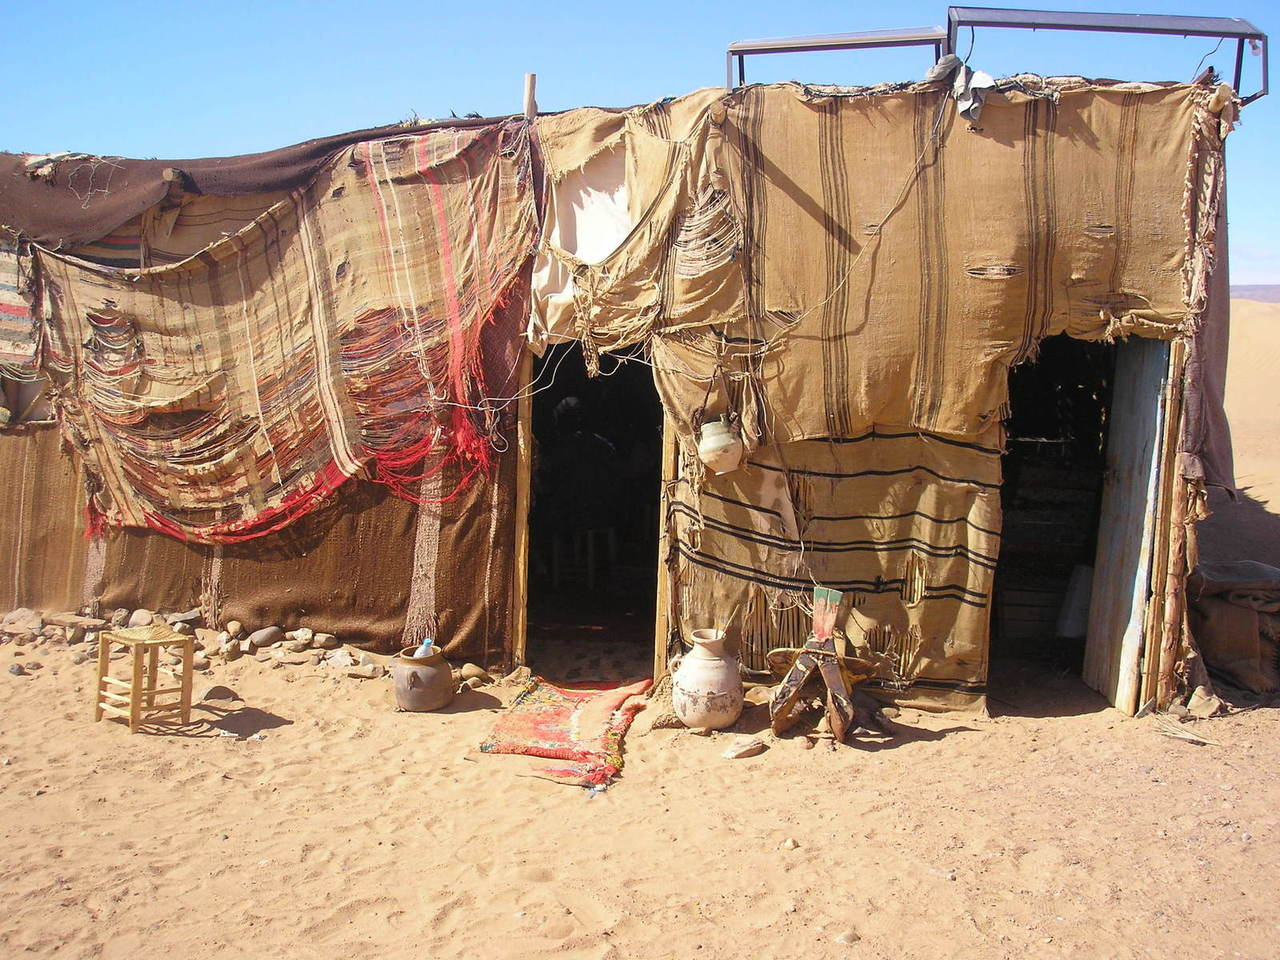 a closeup photo of a Bedouin tent in the desert